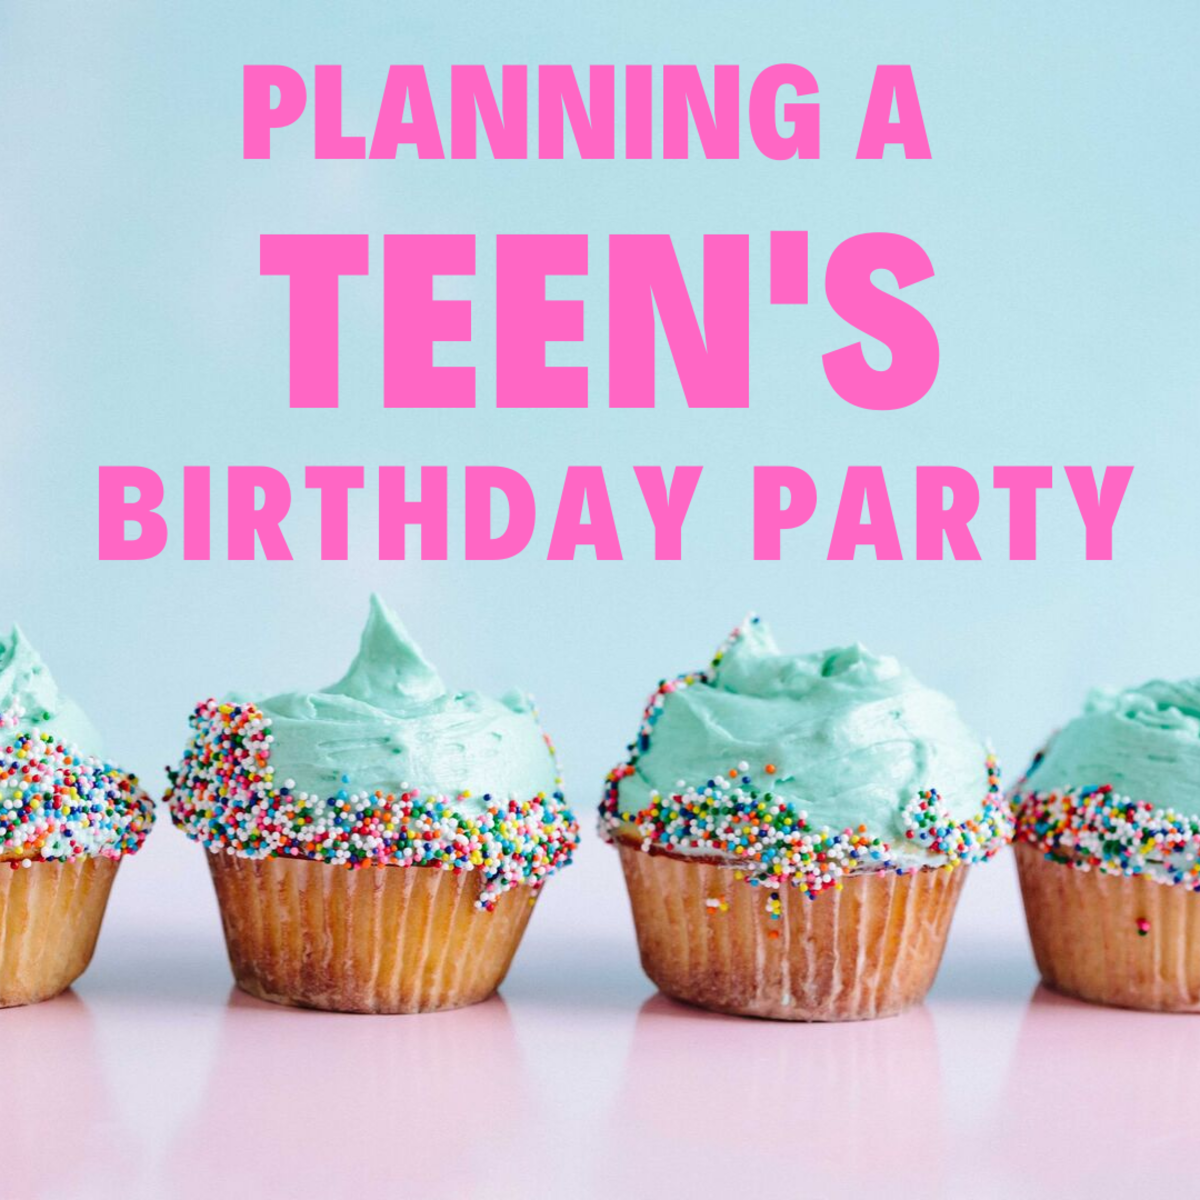 How to Celebrate and Plan Your Teenager's Birthday